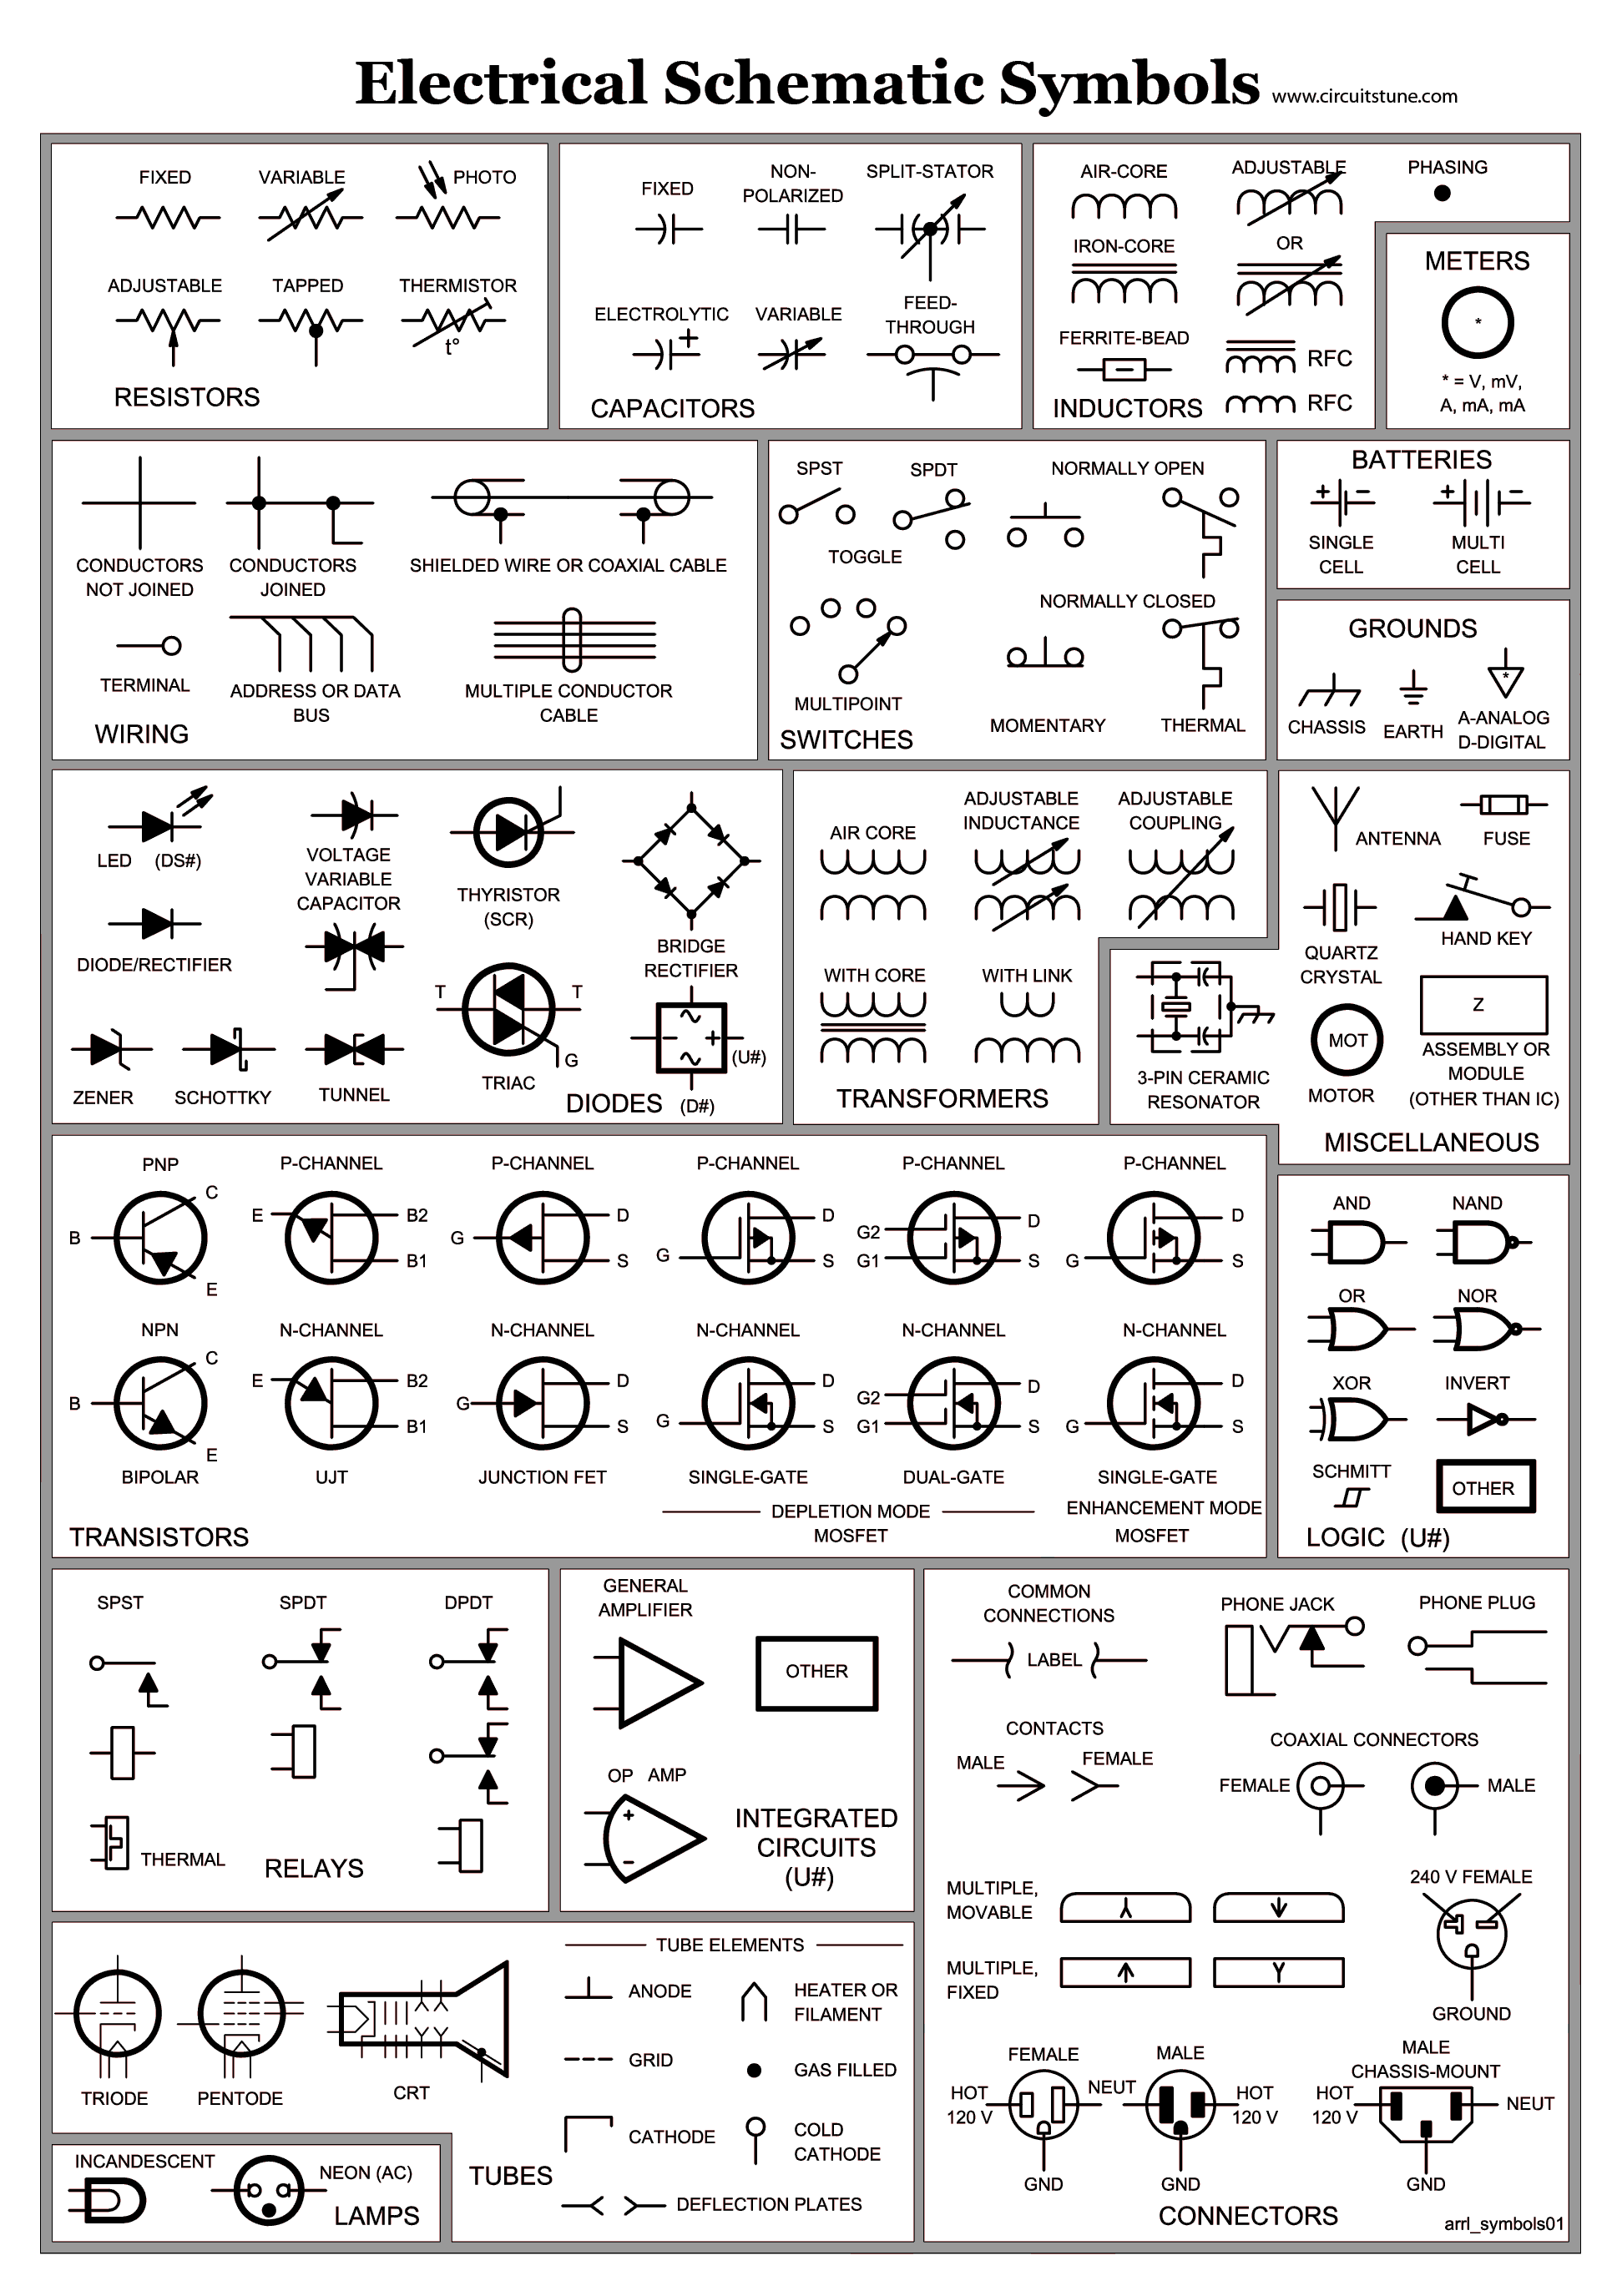 Wiring Diagram Symbols Car : Electrical schematic symbols wire diagram